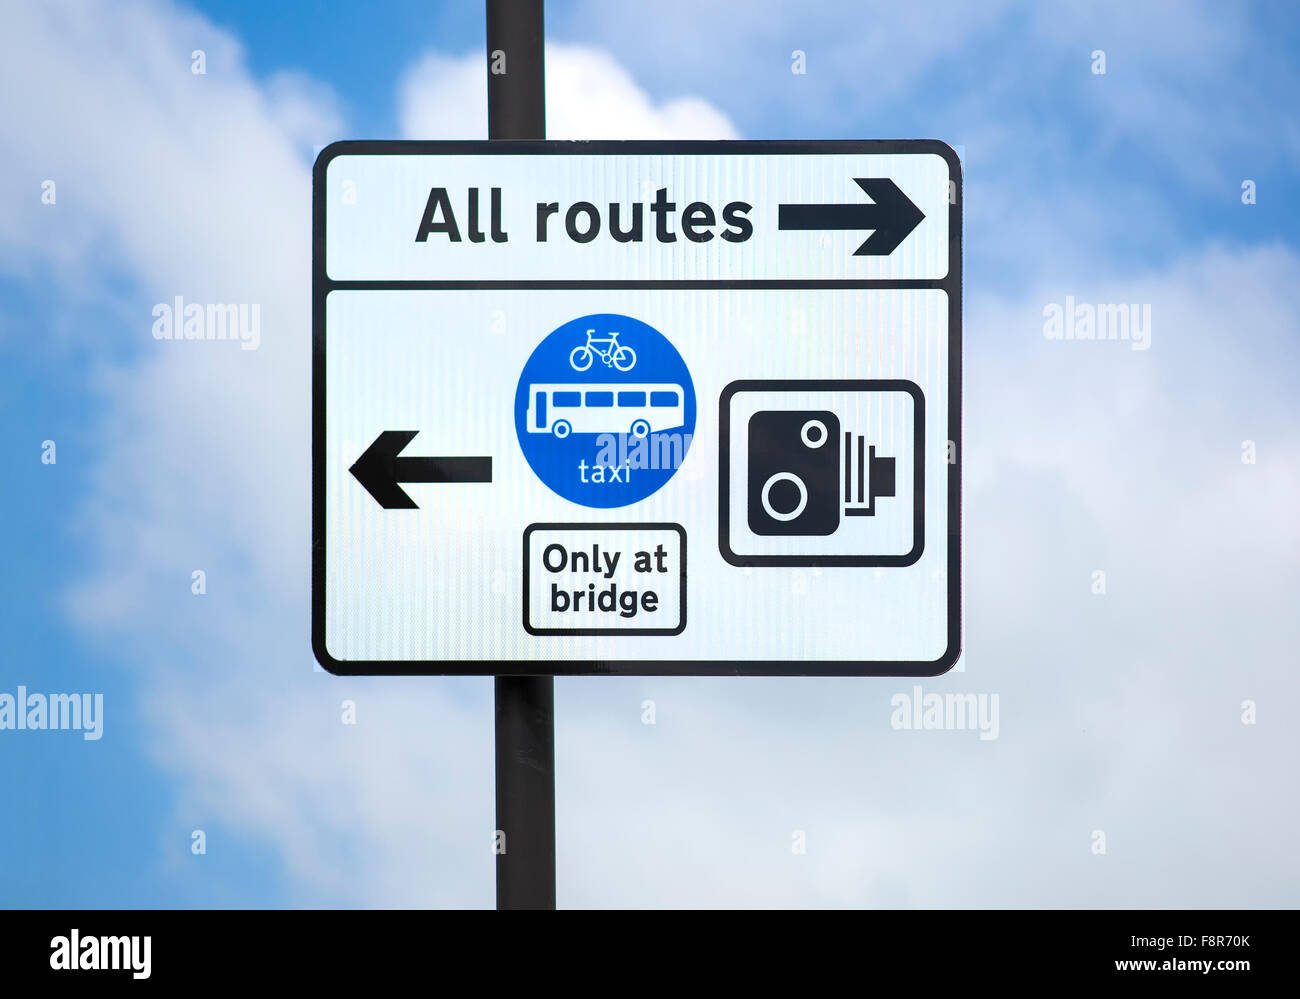 Road Sign Against Sky Showing All Routes and restrictions - Stock Image